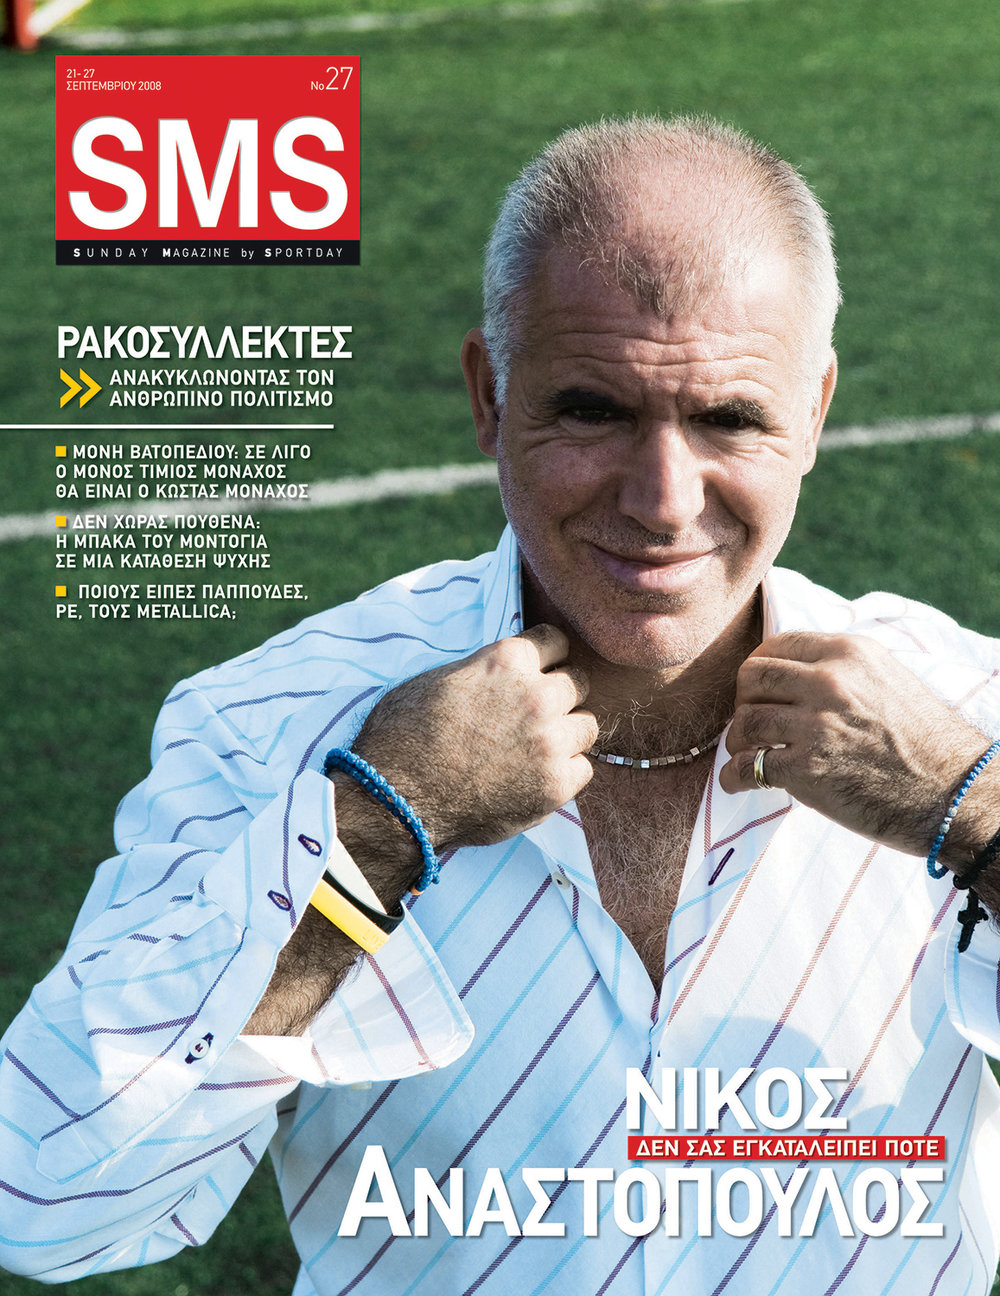 Nikos Anastopoulos / football player / SMS Sportday No 27